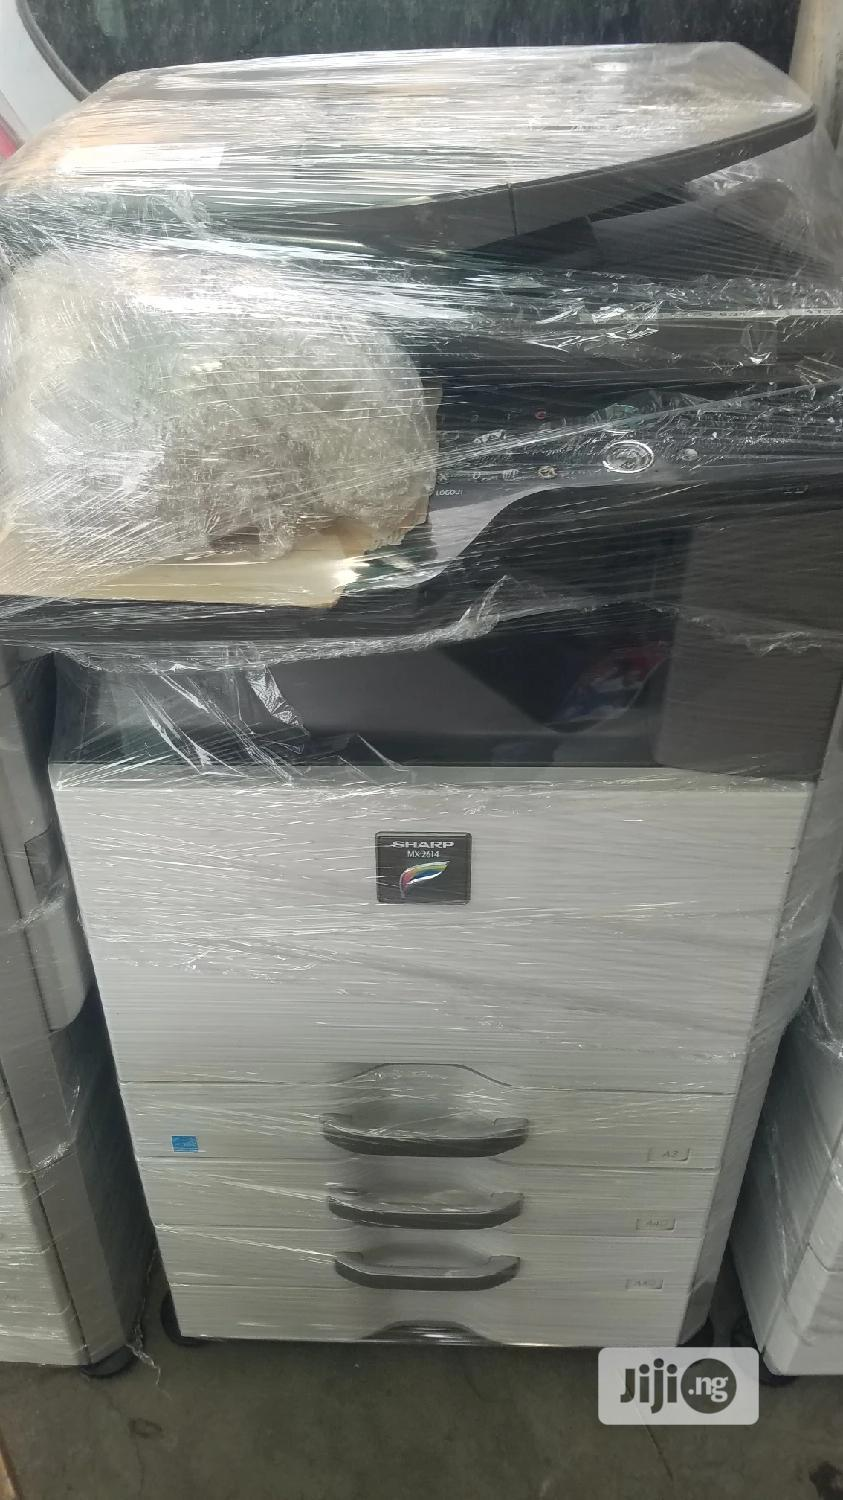 Sharp Mx 2640n | Printers & Scanners for sale in Surulere, Lagos State, Nigeria